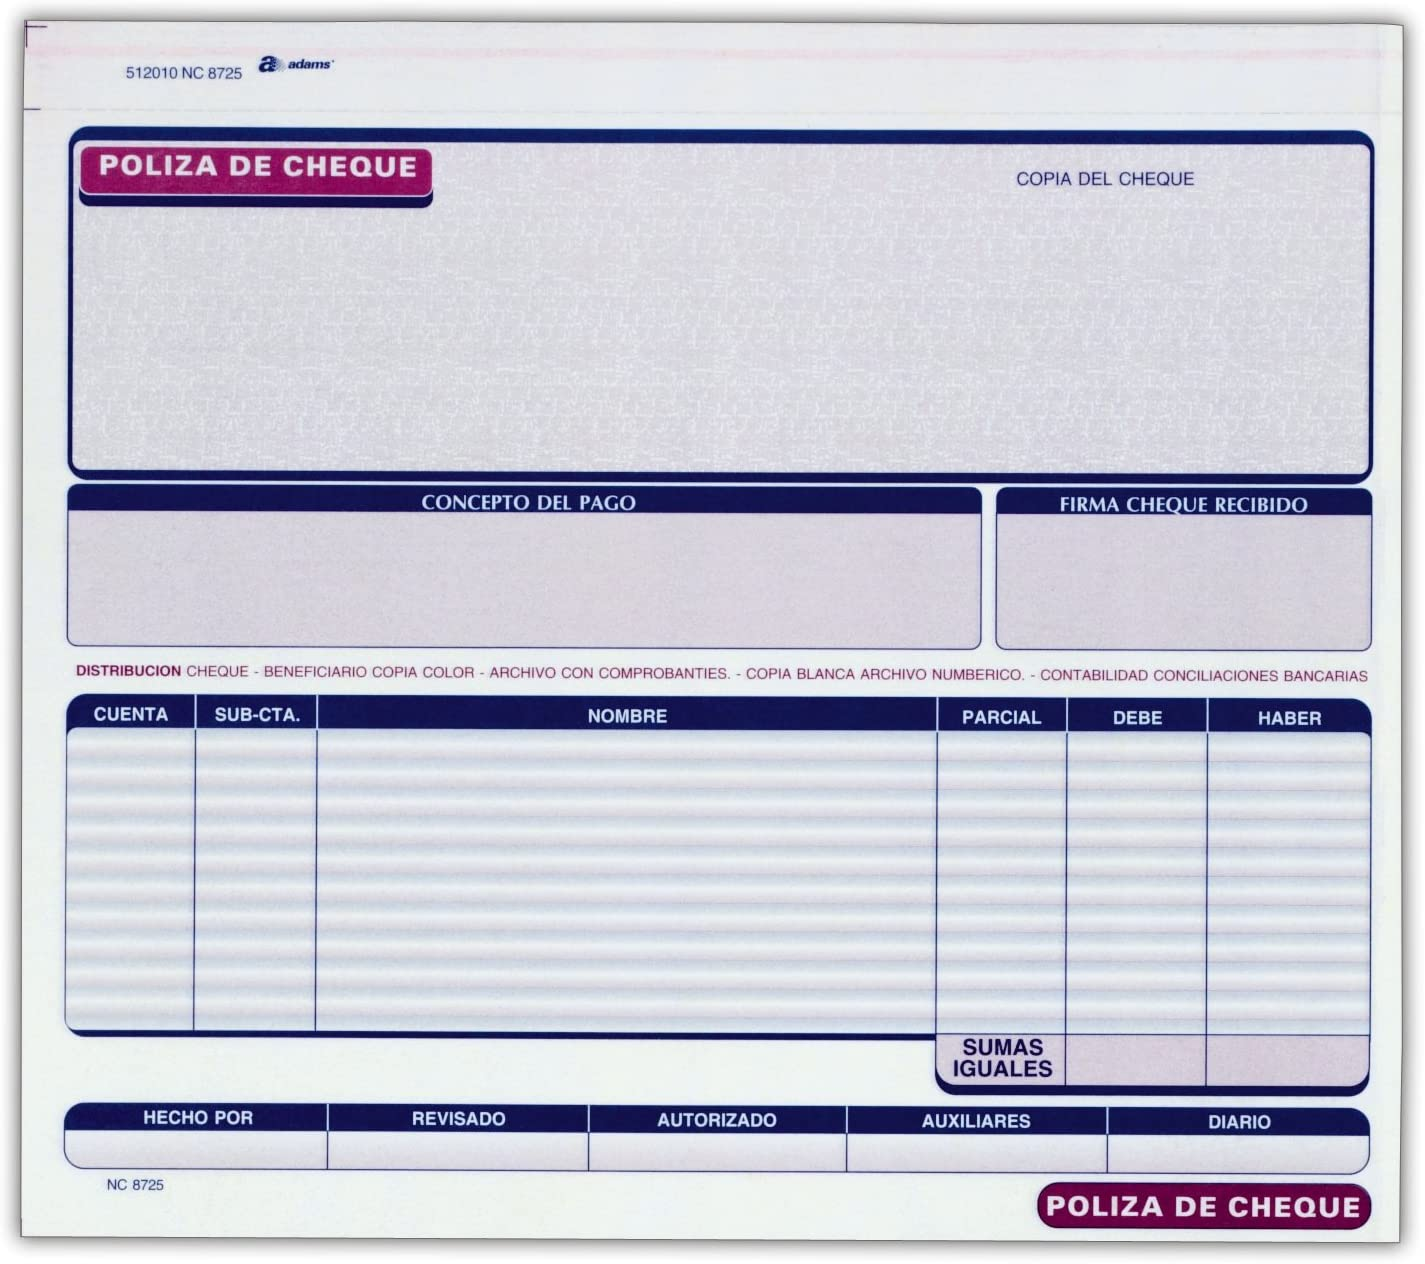 Adams Poliza De Cheque Carbonless 25 Sets per Pack Spanish Language Check Record White//Canary 8.5 x 7.38 2-Part